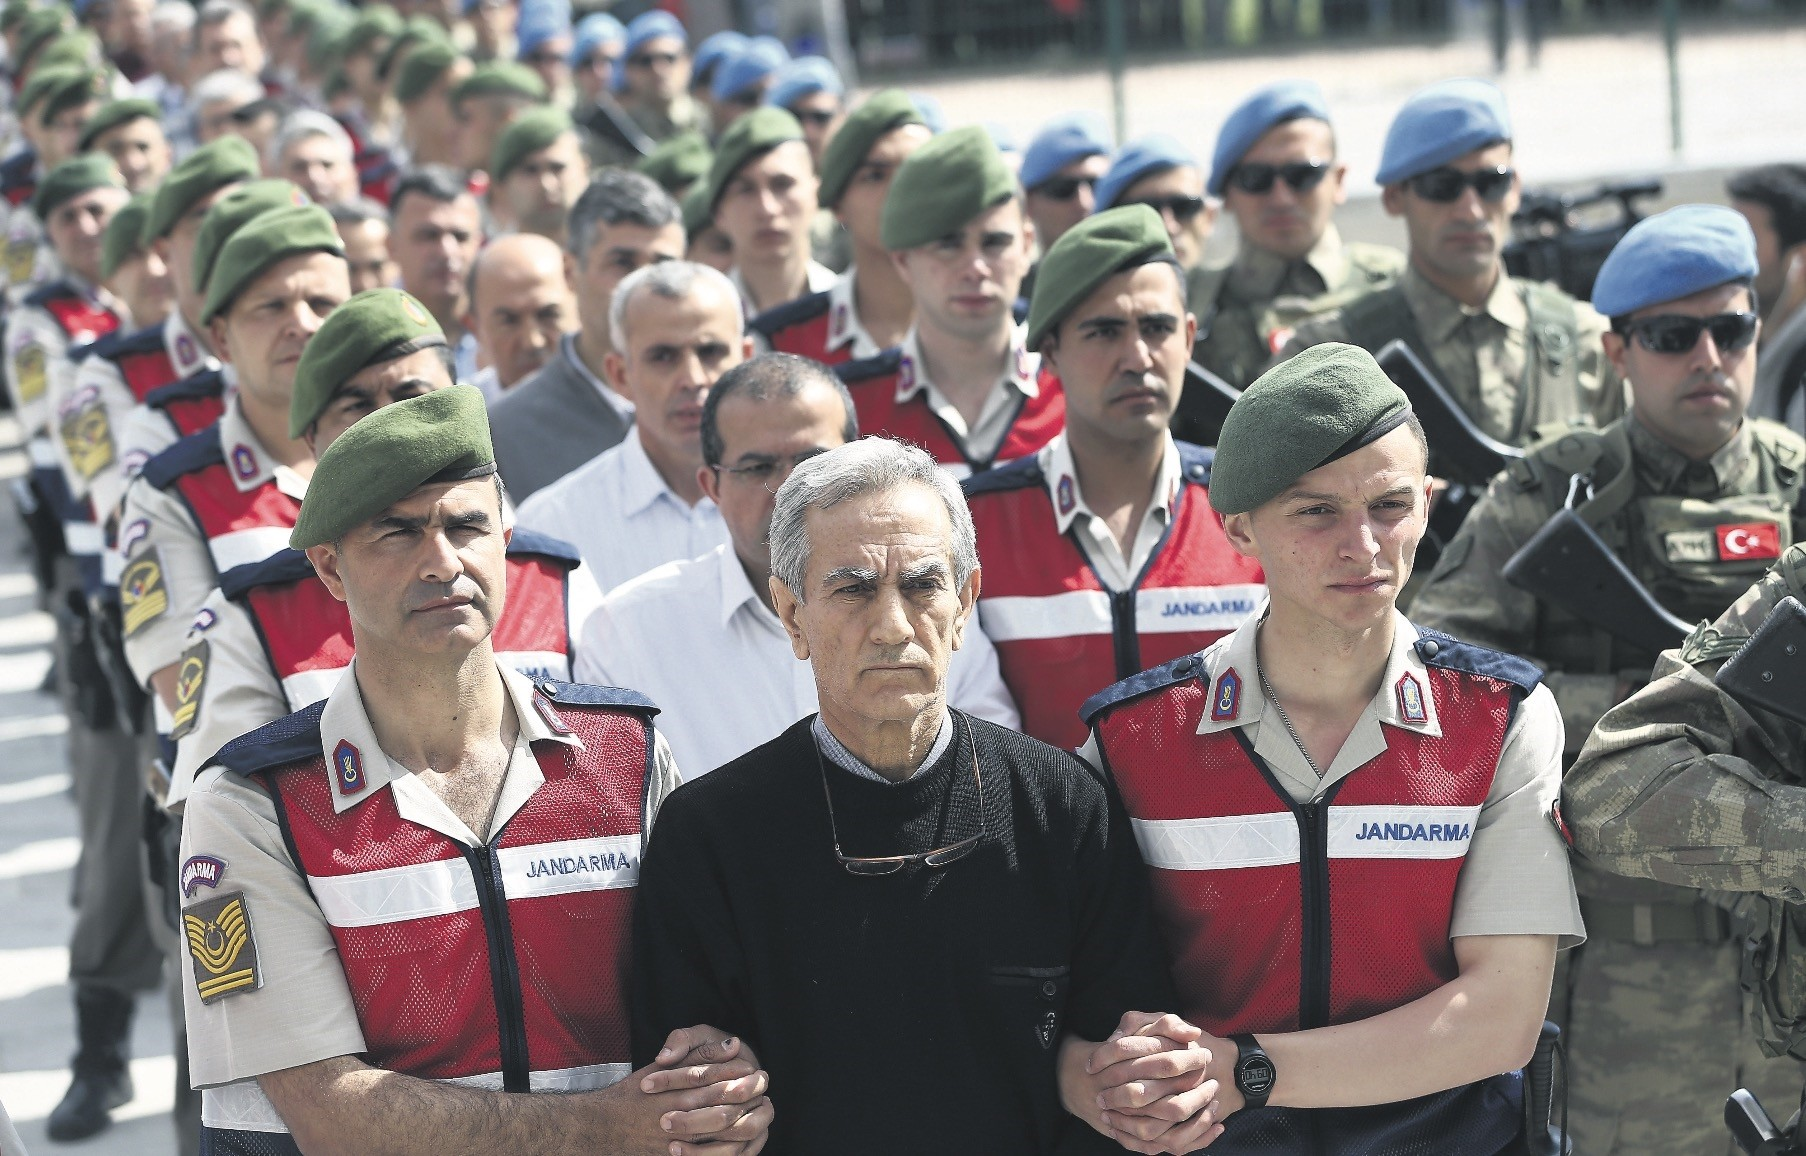 Aku0131n u00d6ztu00fcrk, the former general accused of commanding the putsch attempt and other defendants accompanied by troops at the first hearing of a trial in the capital Ankara in May 2017.